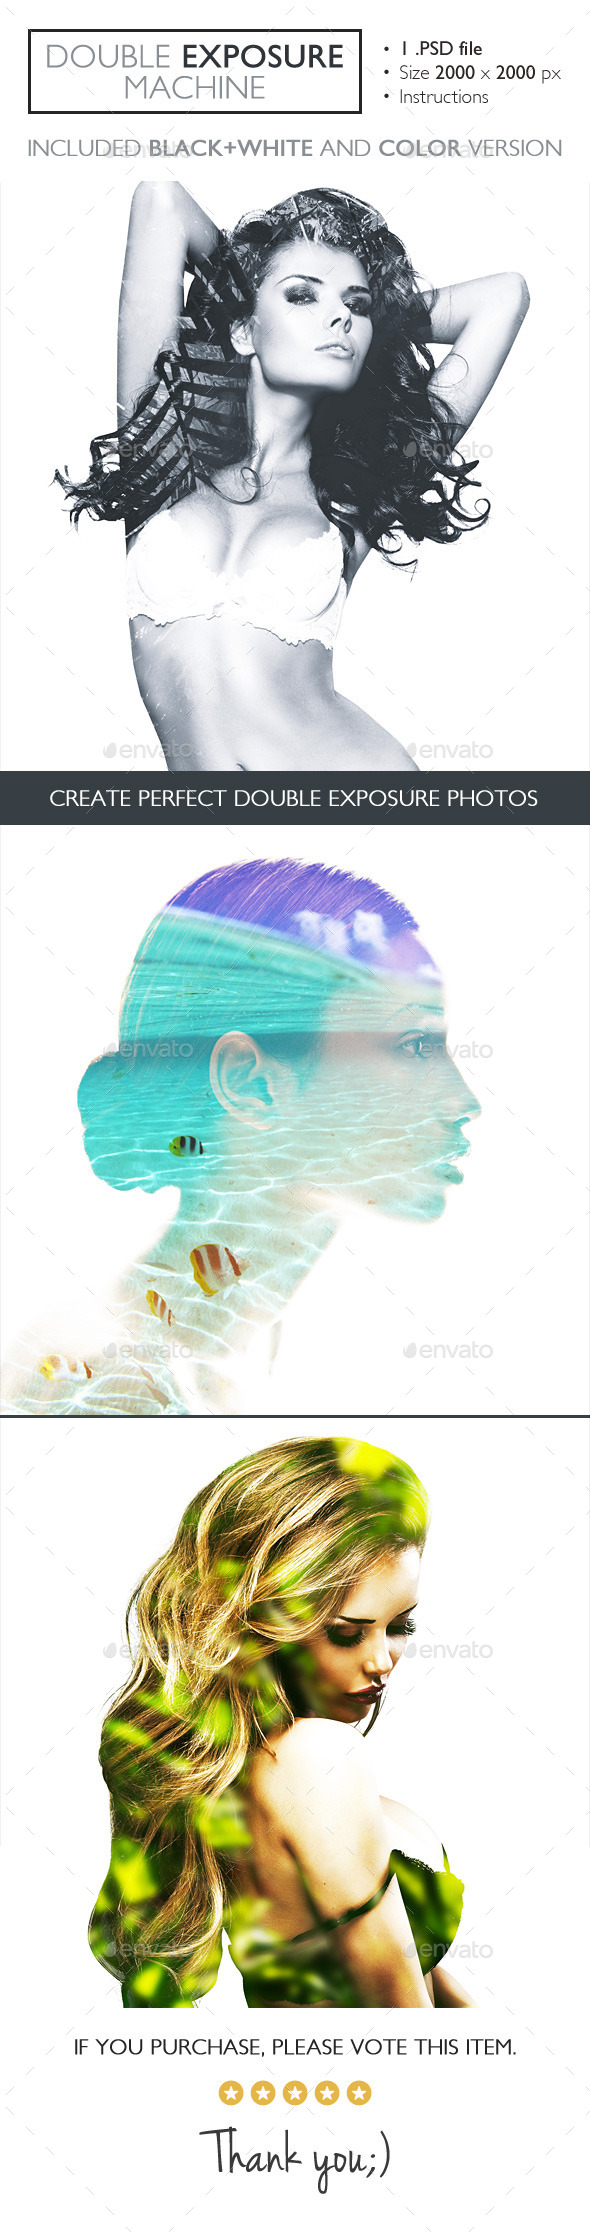 GraphicRiver Double Exposure Machine 11580571